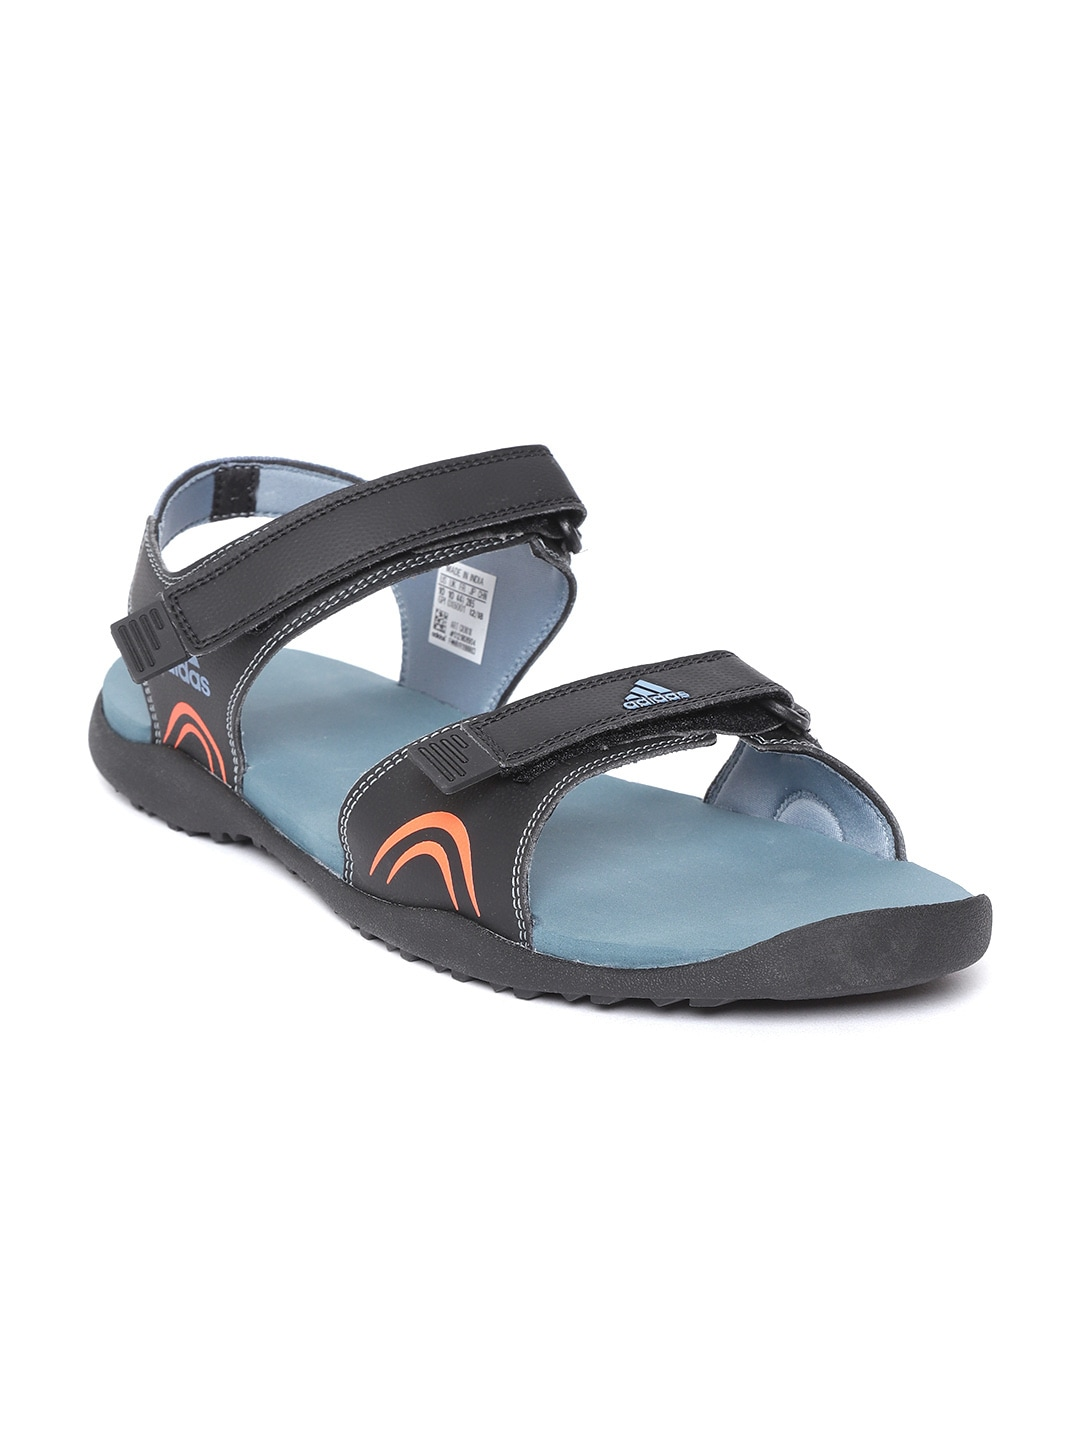 c426e3f6dfa3 Sandal Adidas Men Sports Sandals - Buy Sandal Adidas Men Sports Sandals  online in India